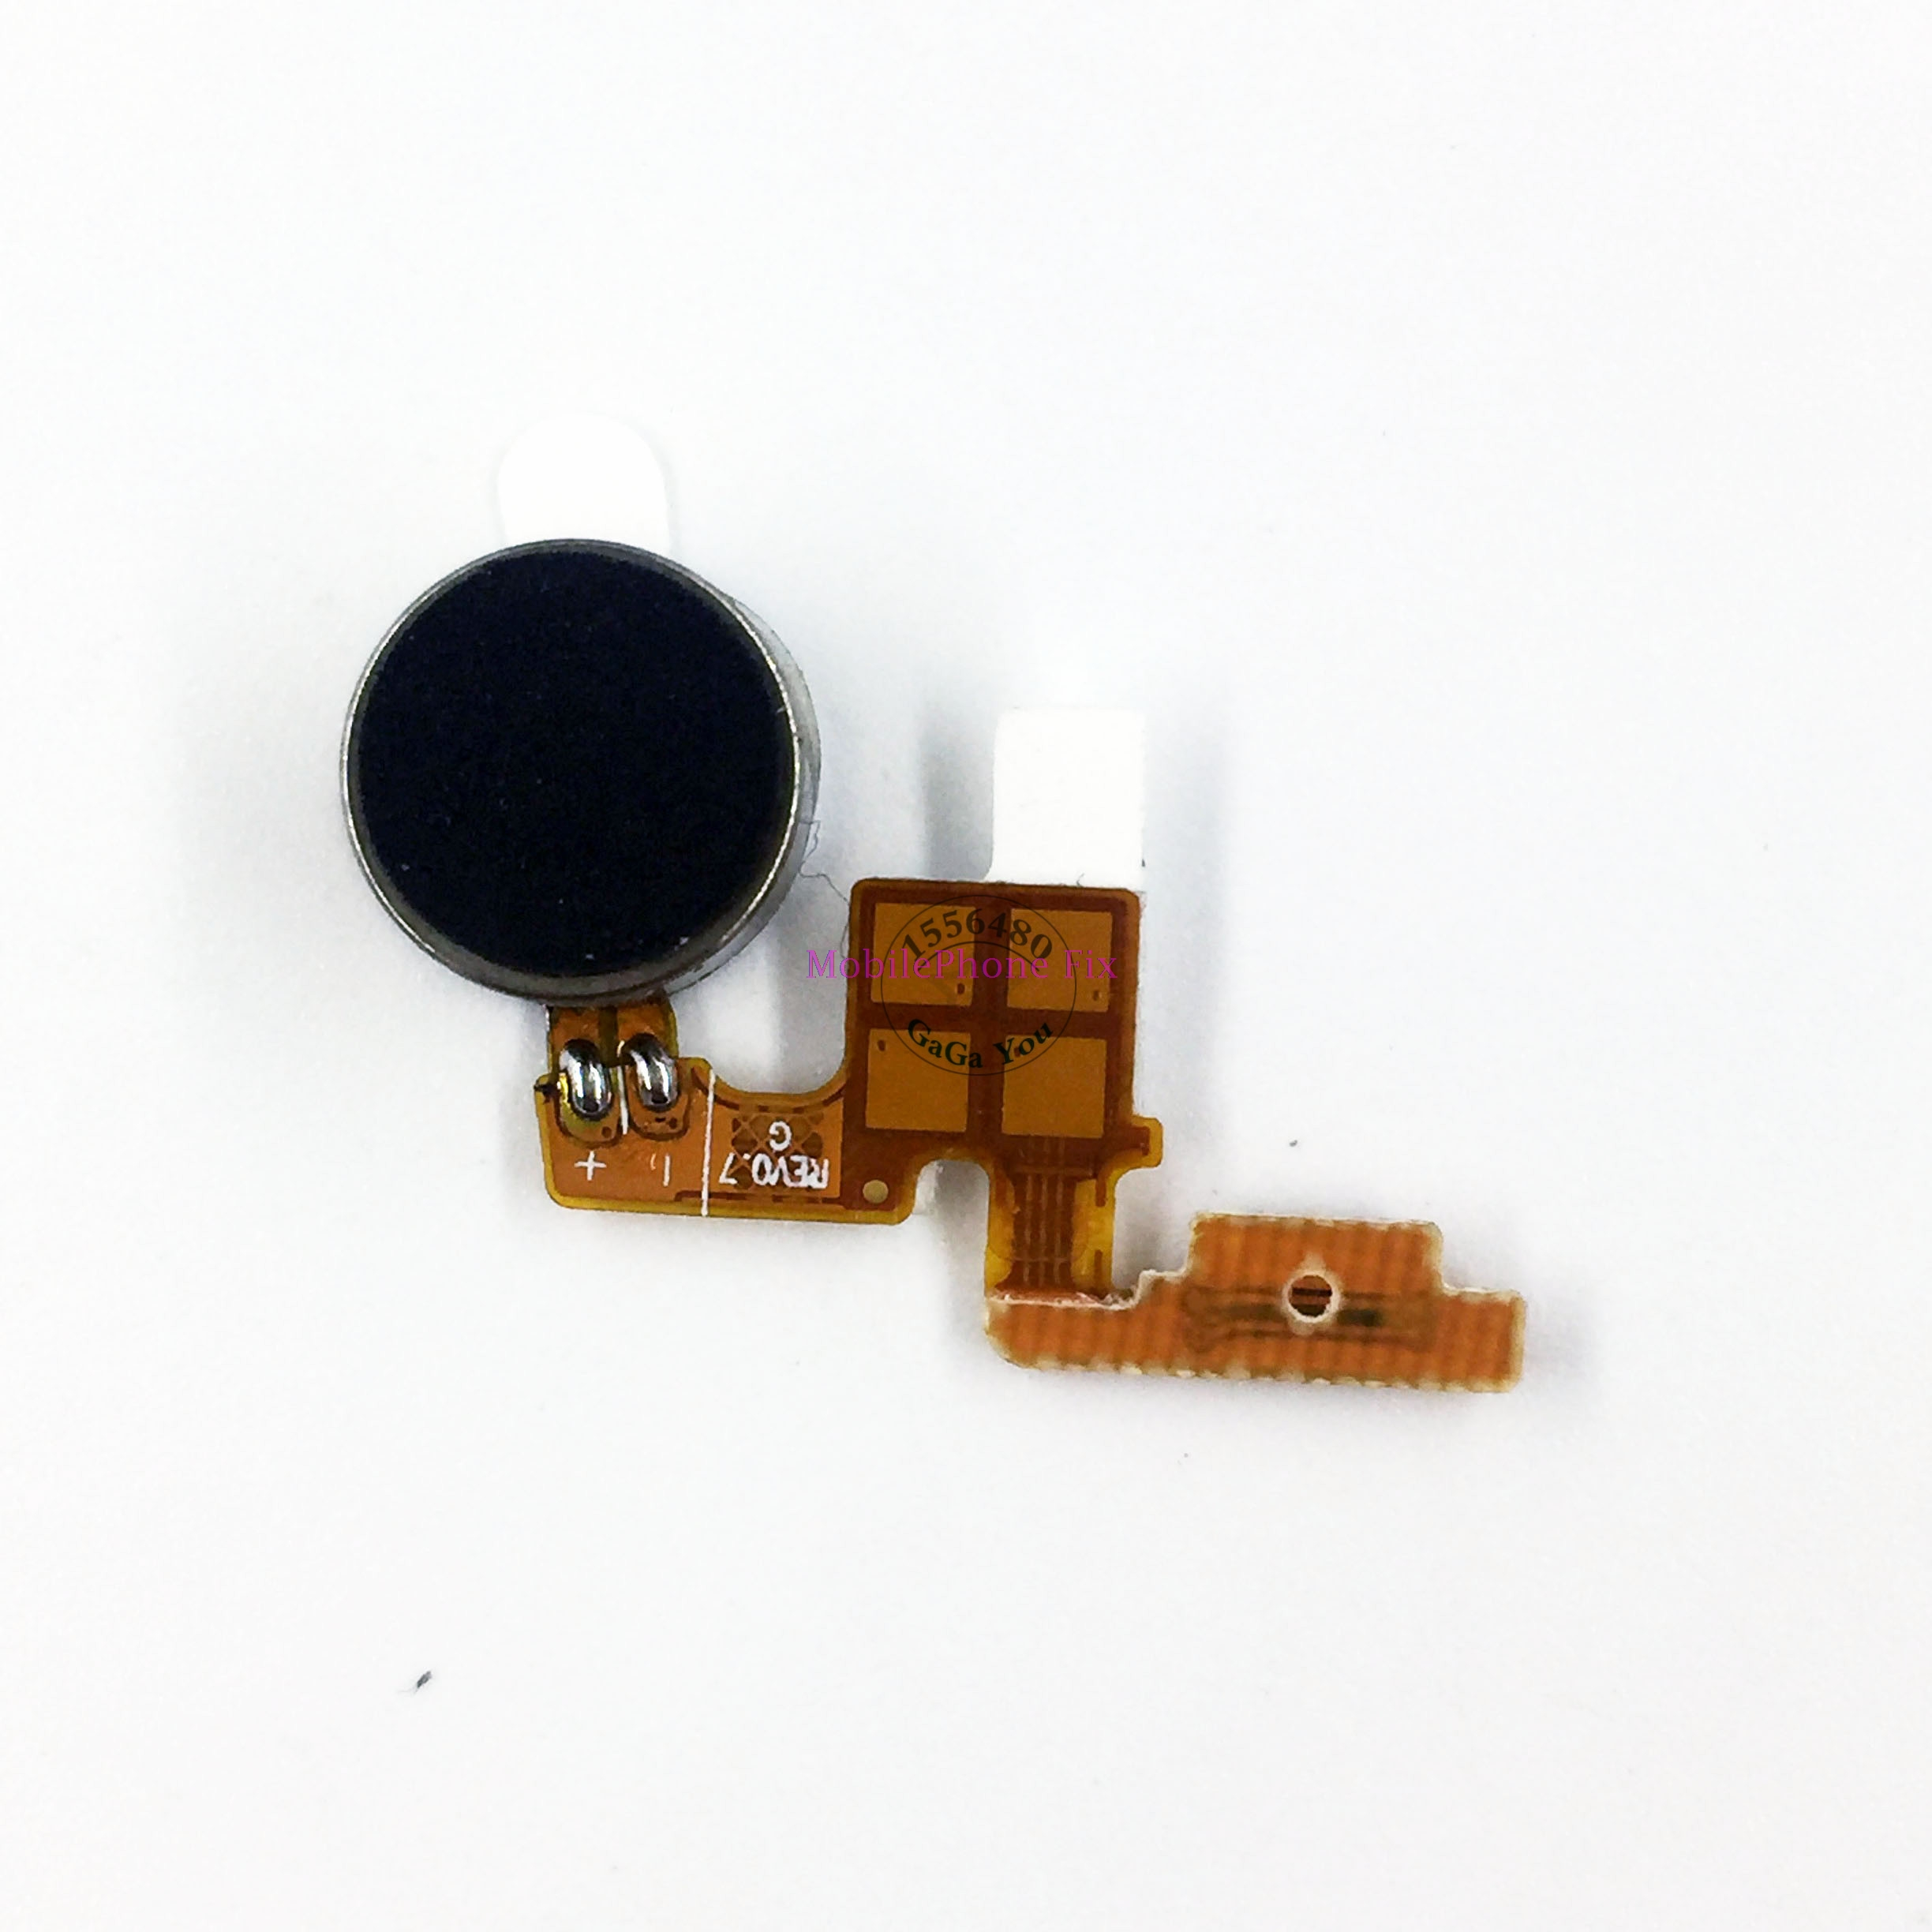 10x For Samsung Galaxy Note 3 N9000 N9002 N9005 Power Button Swtich with Vibrator Vibrating Flex Cable